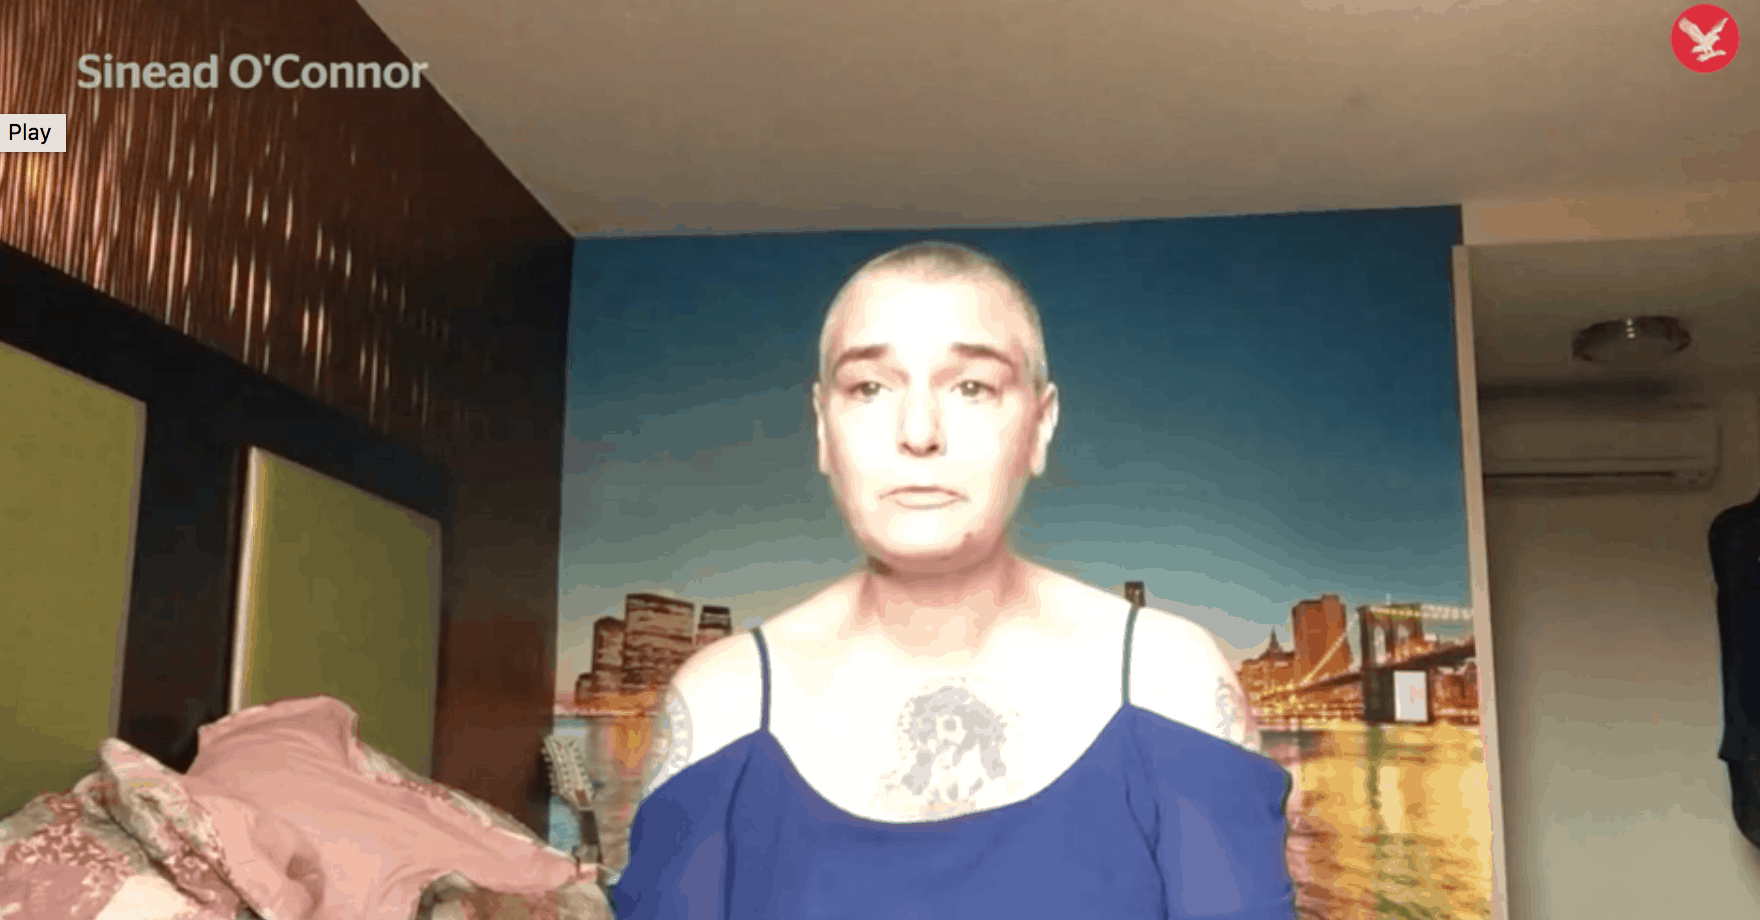 Sinead O'Connor Says She's Suicidal in Shocking Facebook Video